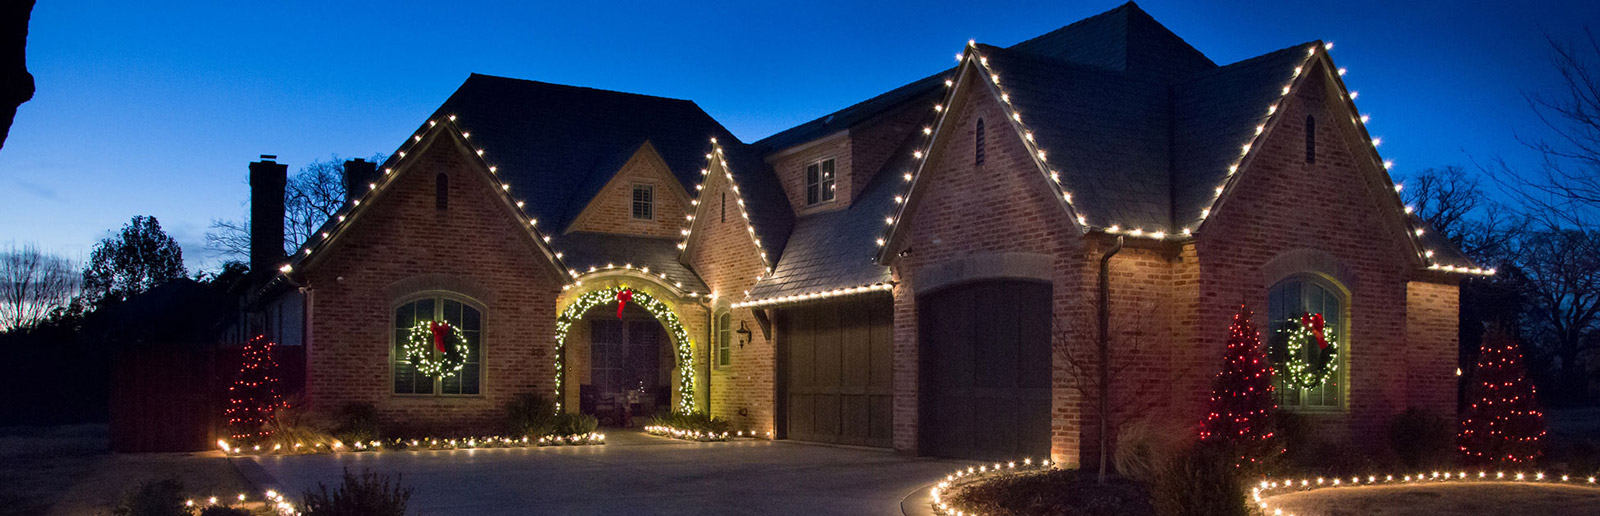 Holiday Lighting In Overland Park Leawood And Kansas